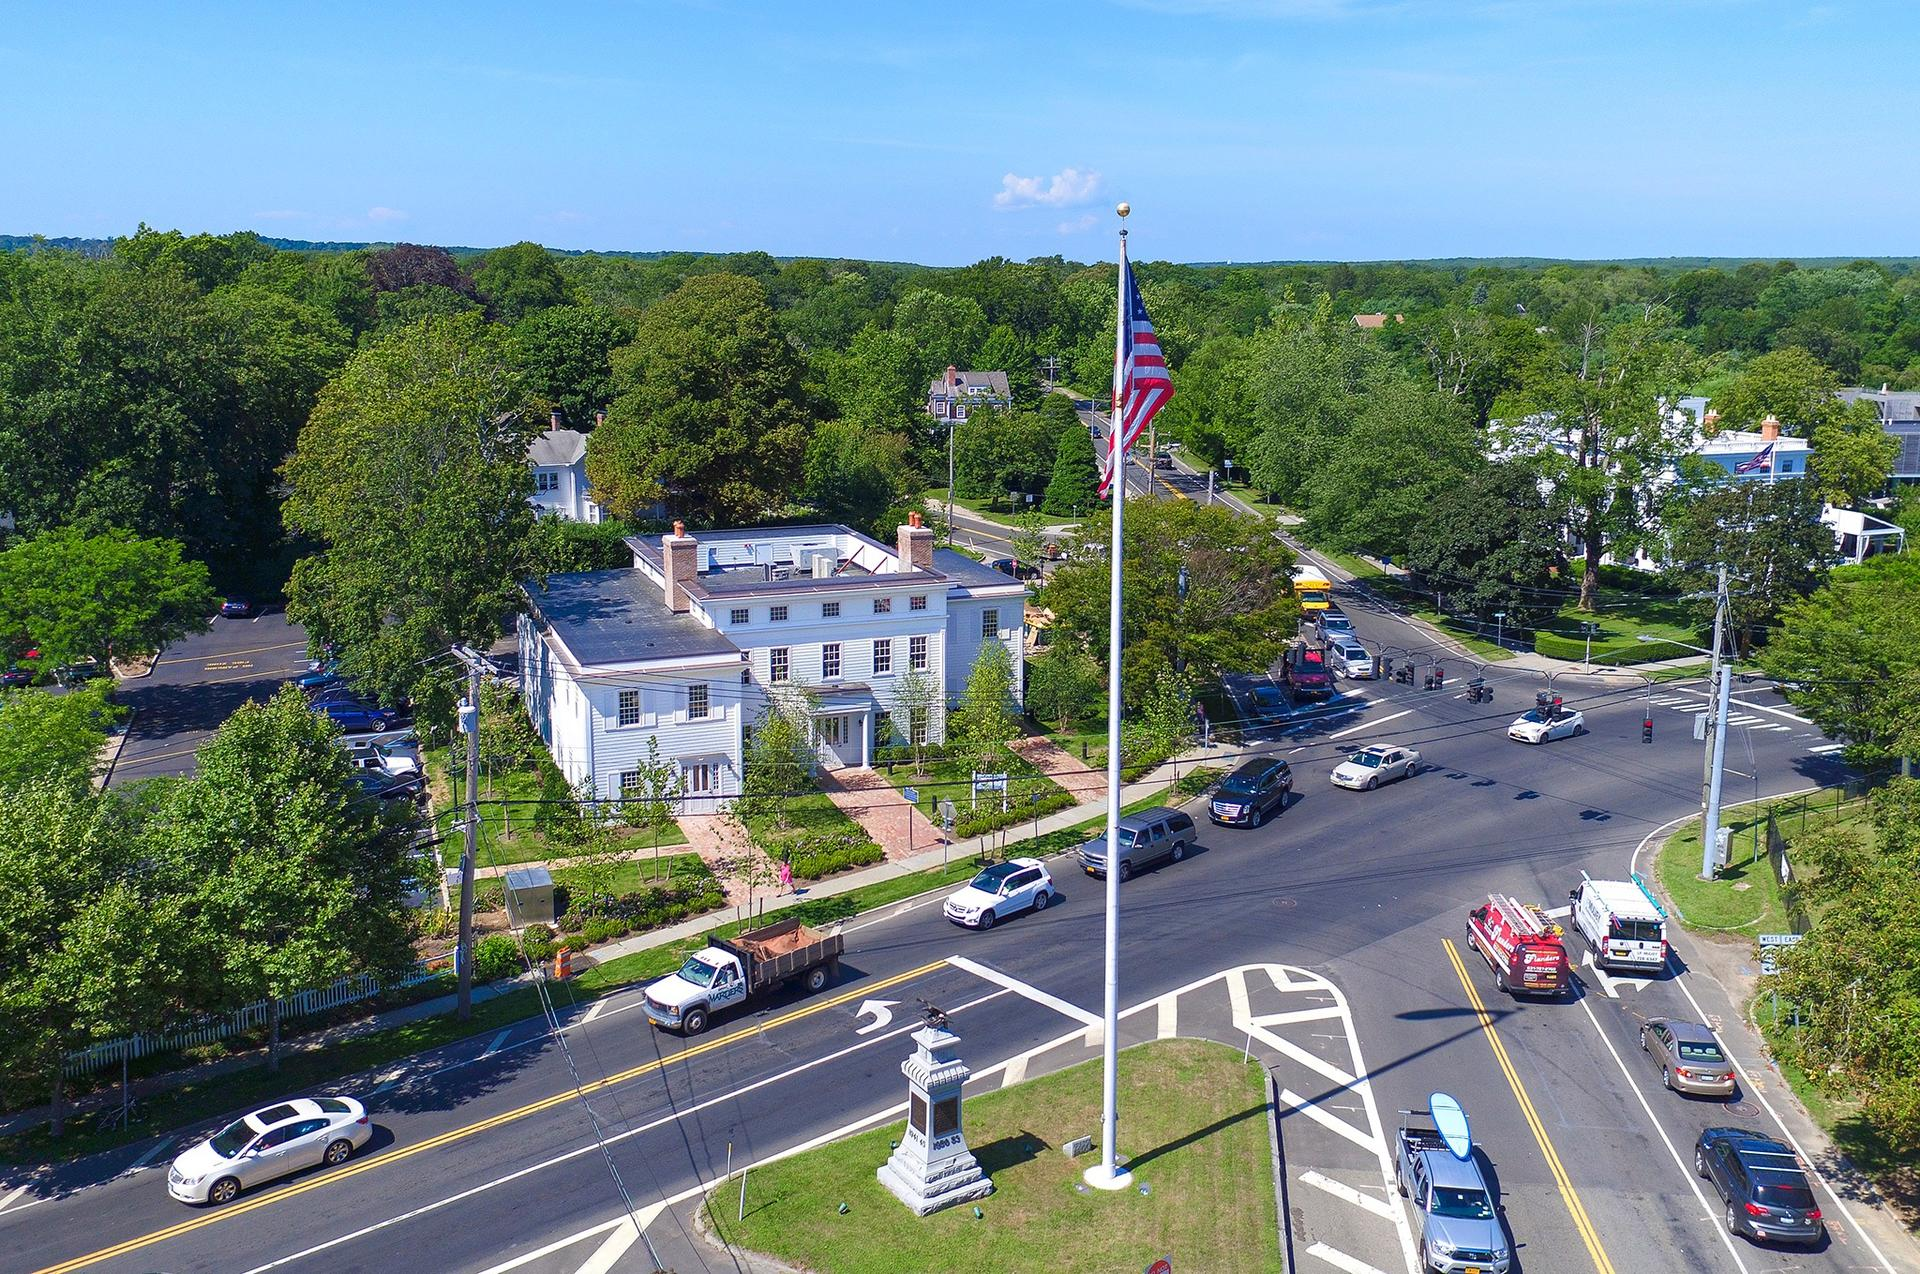 Commercial for Sale at Bridgehampton - Brand New Retail/Office Space 10 Lumber Lane (2510 Montauk Highway), First Floor #1, Bridgehampton, New York